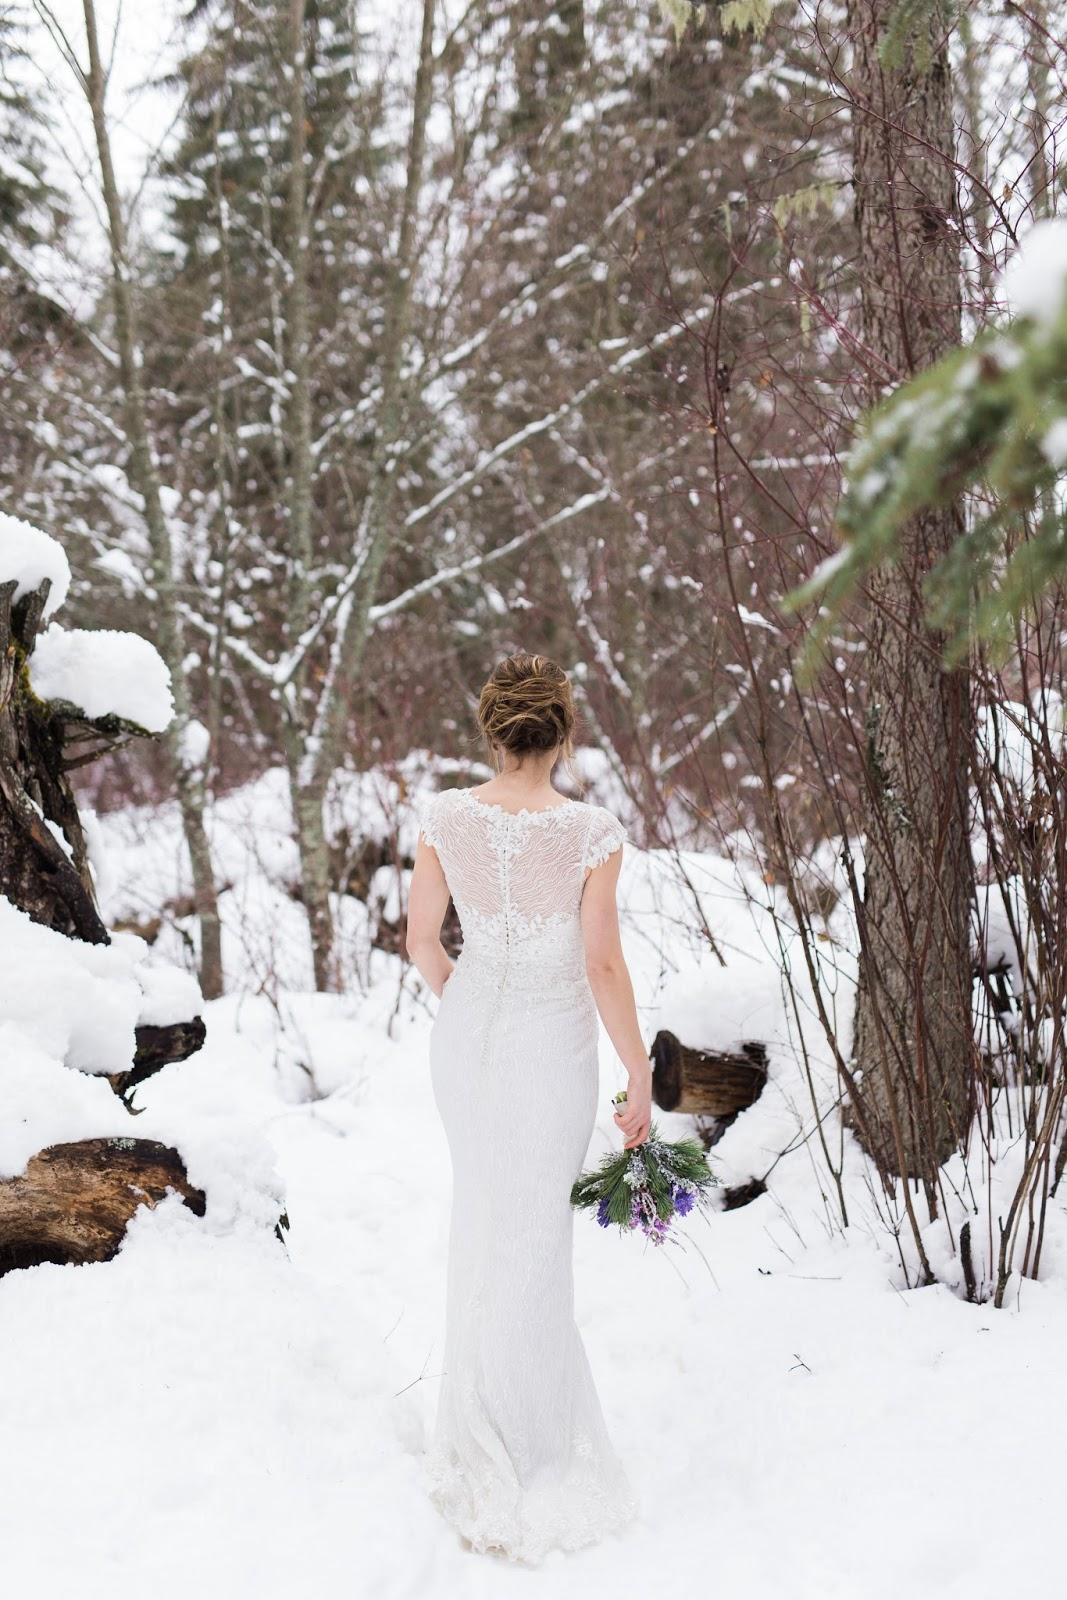 Winter wedding photography by Dina Remi